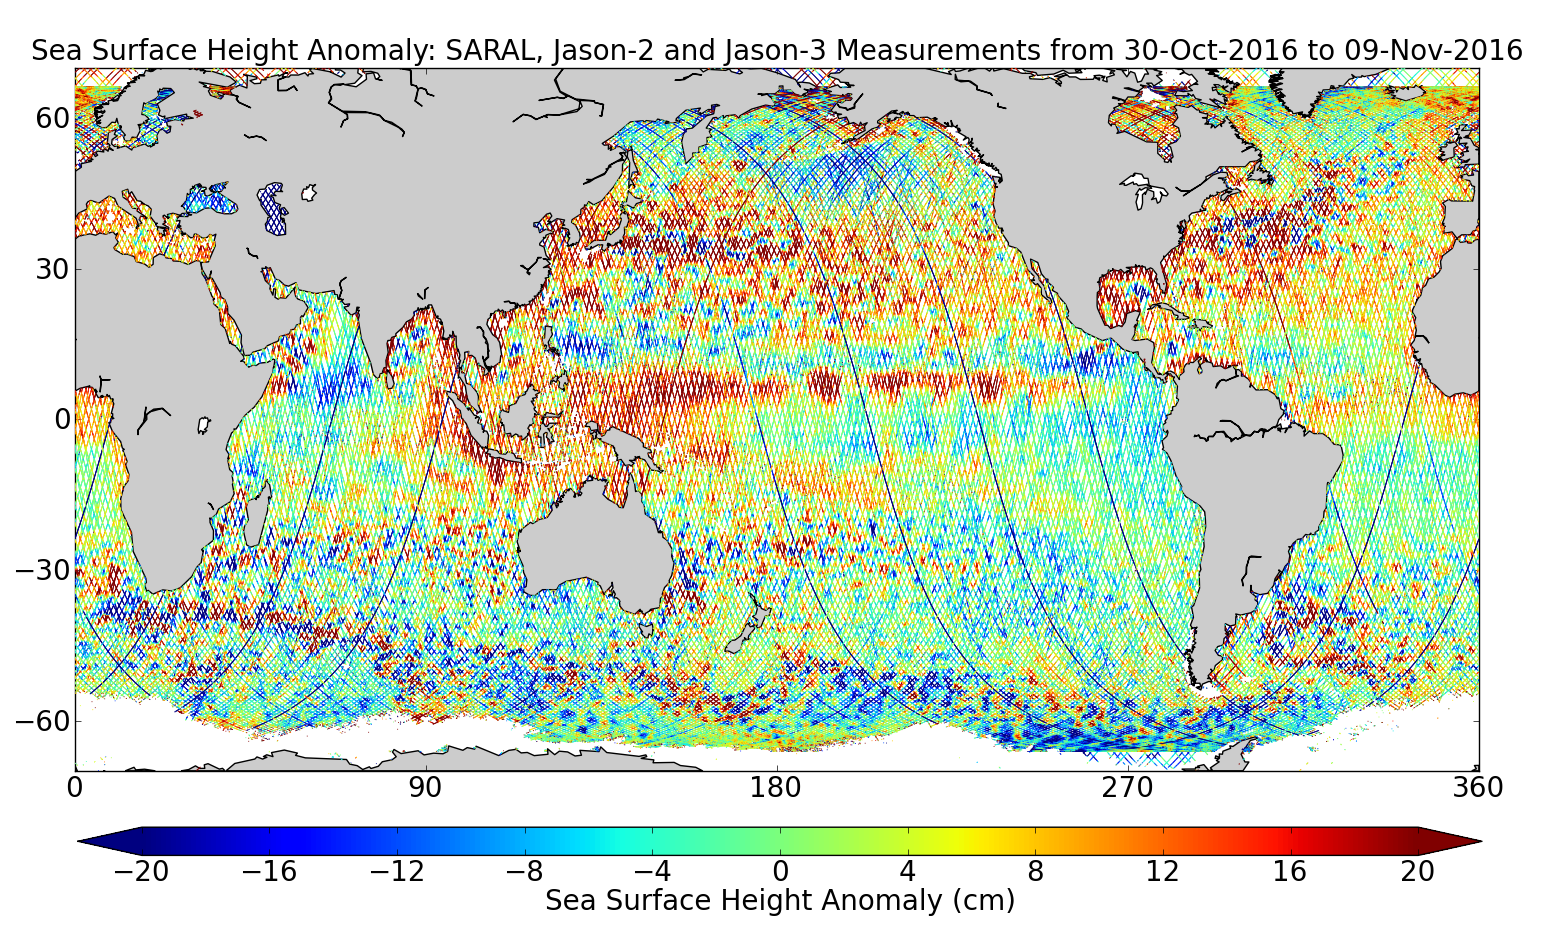 Sea Surface Height Anomaly: SARAL, Jason-2 and Jason-3 Measurements from 30-Oct-2016 to 09-Nov-2016